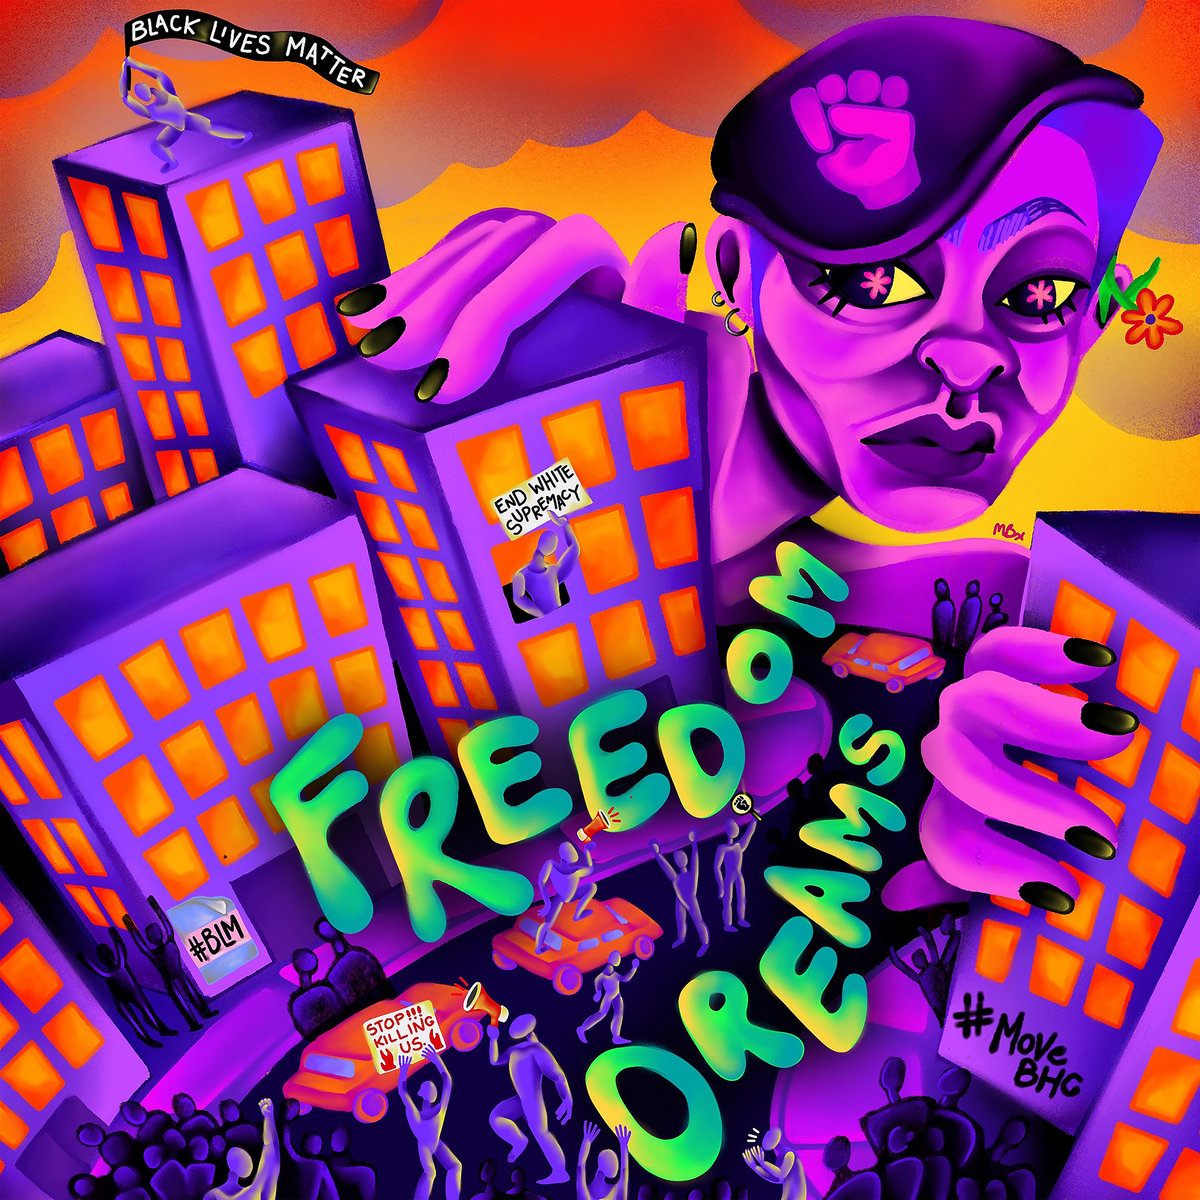 -sold out- Move - Freedom dreams 7